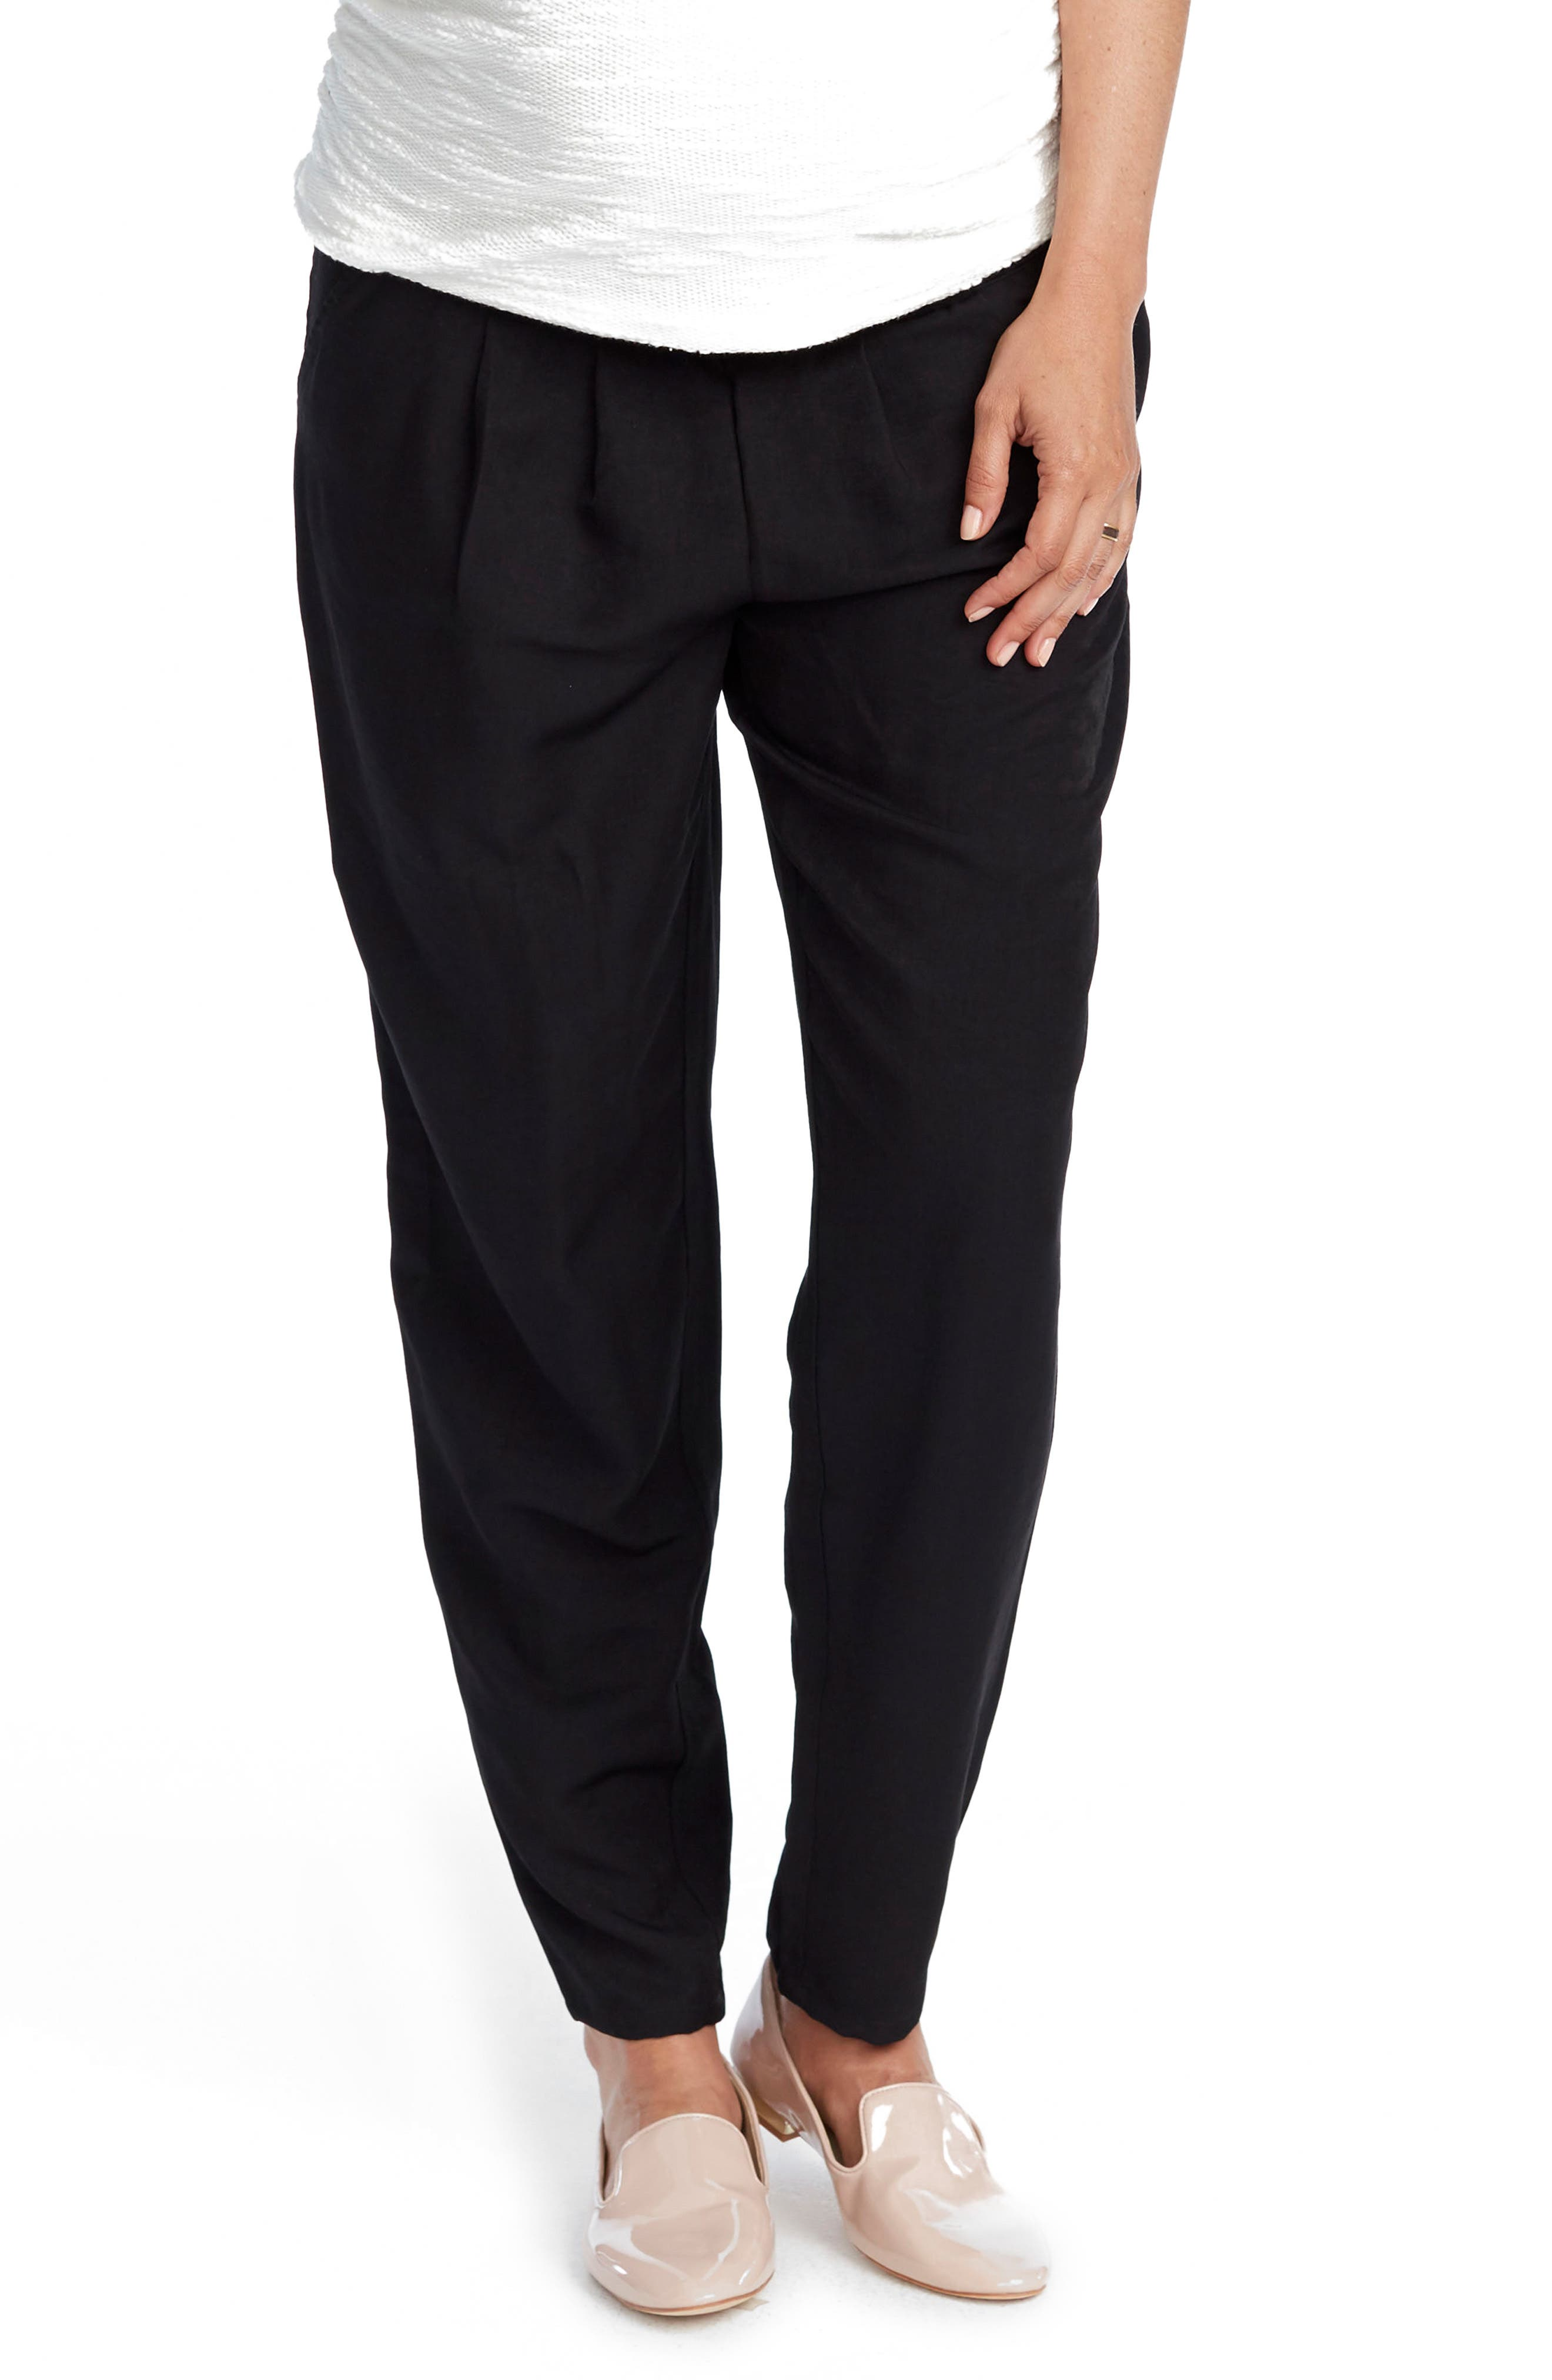 Willow Maternity Pants,                         Main,                         color, BLACK